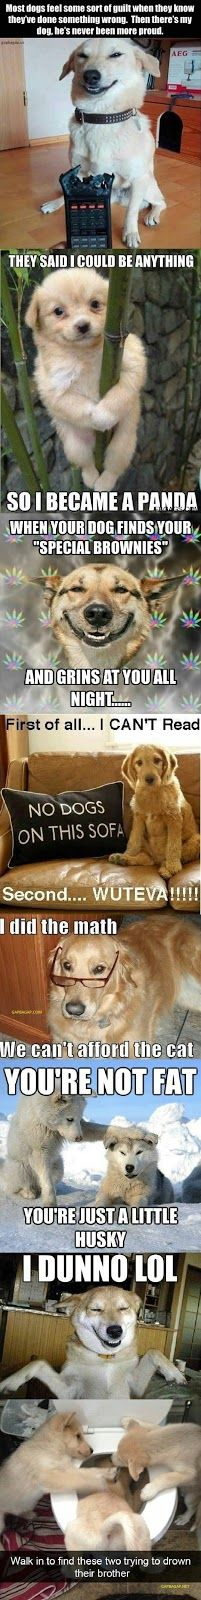 Top 5 Funniest Memes Of The Day ft. Funny Dogs